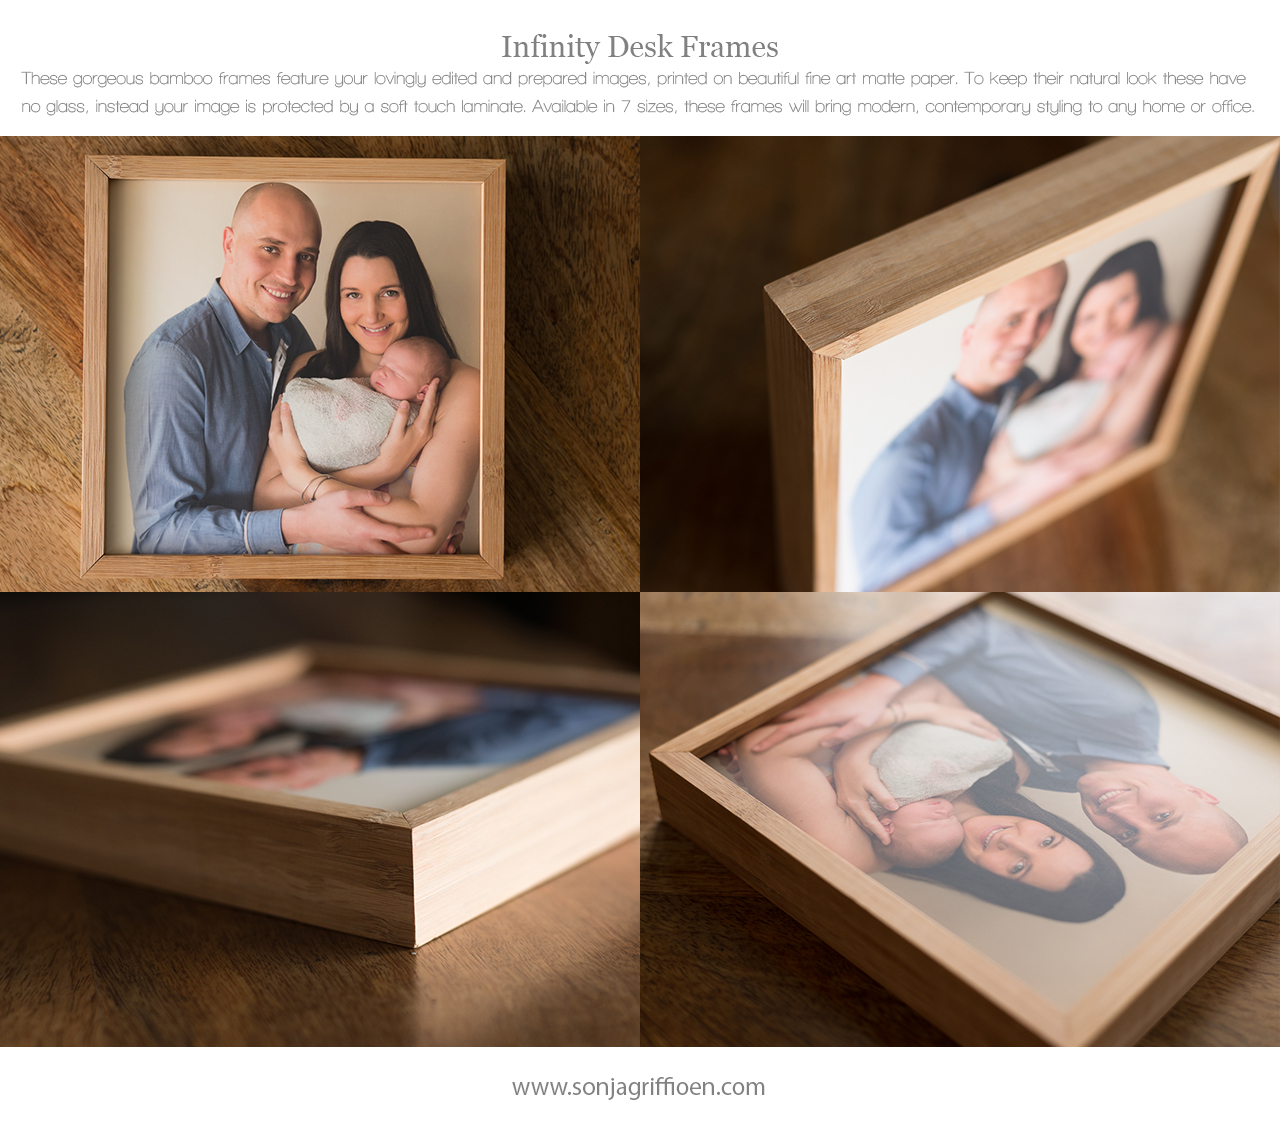 Infinity Desk Frames - Brisbane Newborn Photographer Sonja Griffioen. These gorgeous bamboo frames feature your lovingly edited and prepared images, printed on beautiful fine art matte paper. To keep their natural look these have no glass, instead your image is protected by a soft touch laminate. Available in 7 sizes, these frames will bring modern, contemporary styling to any home or office.